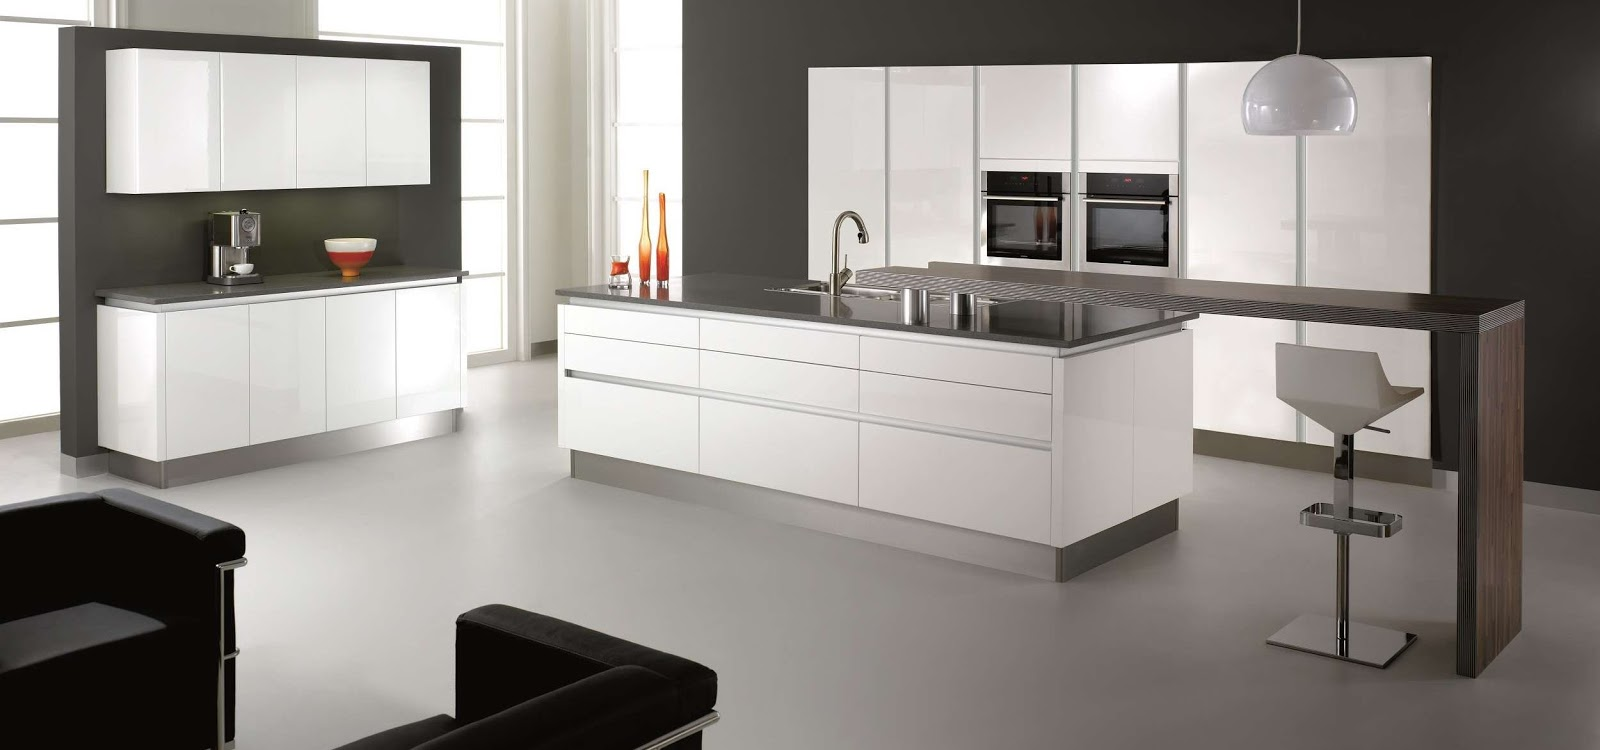 Kitchen Suppliers In Berkshire | Orphic Kitchens